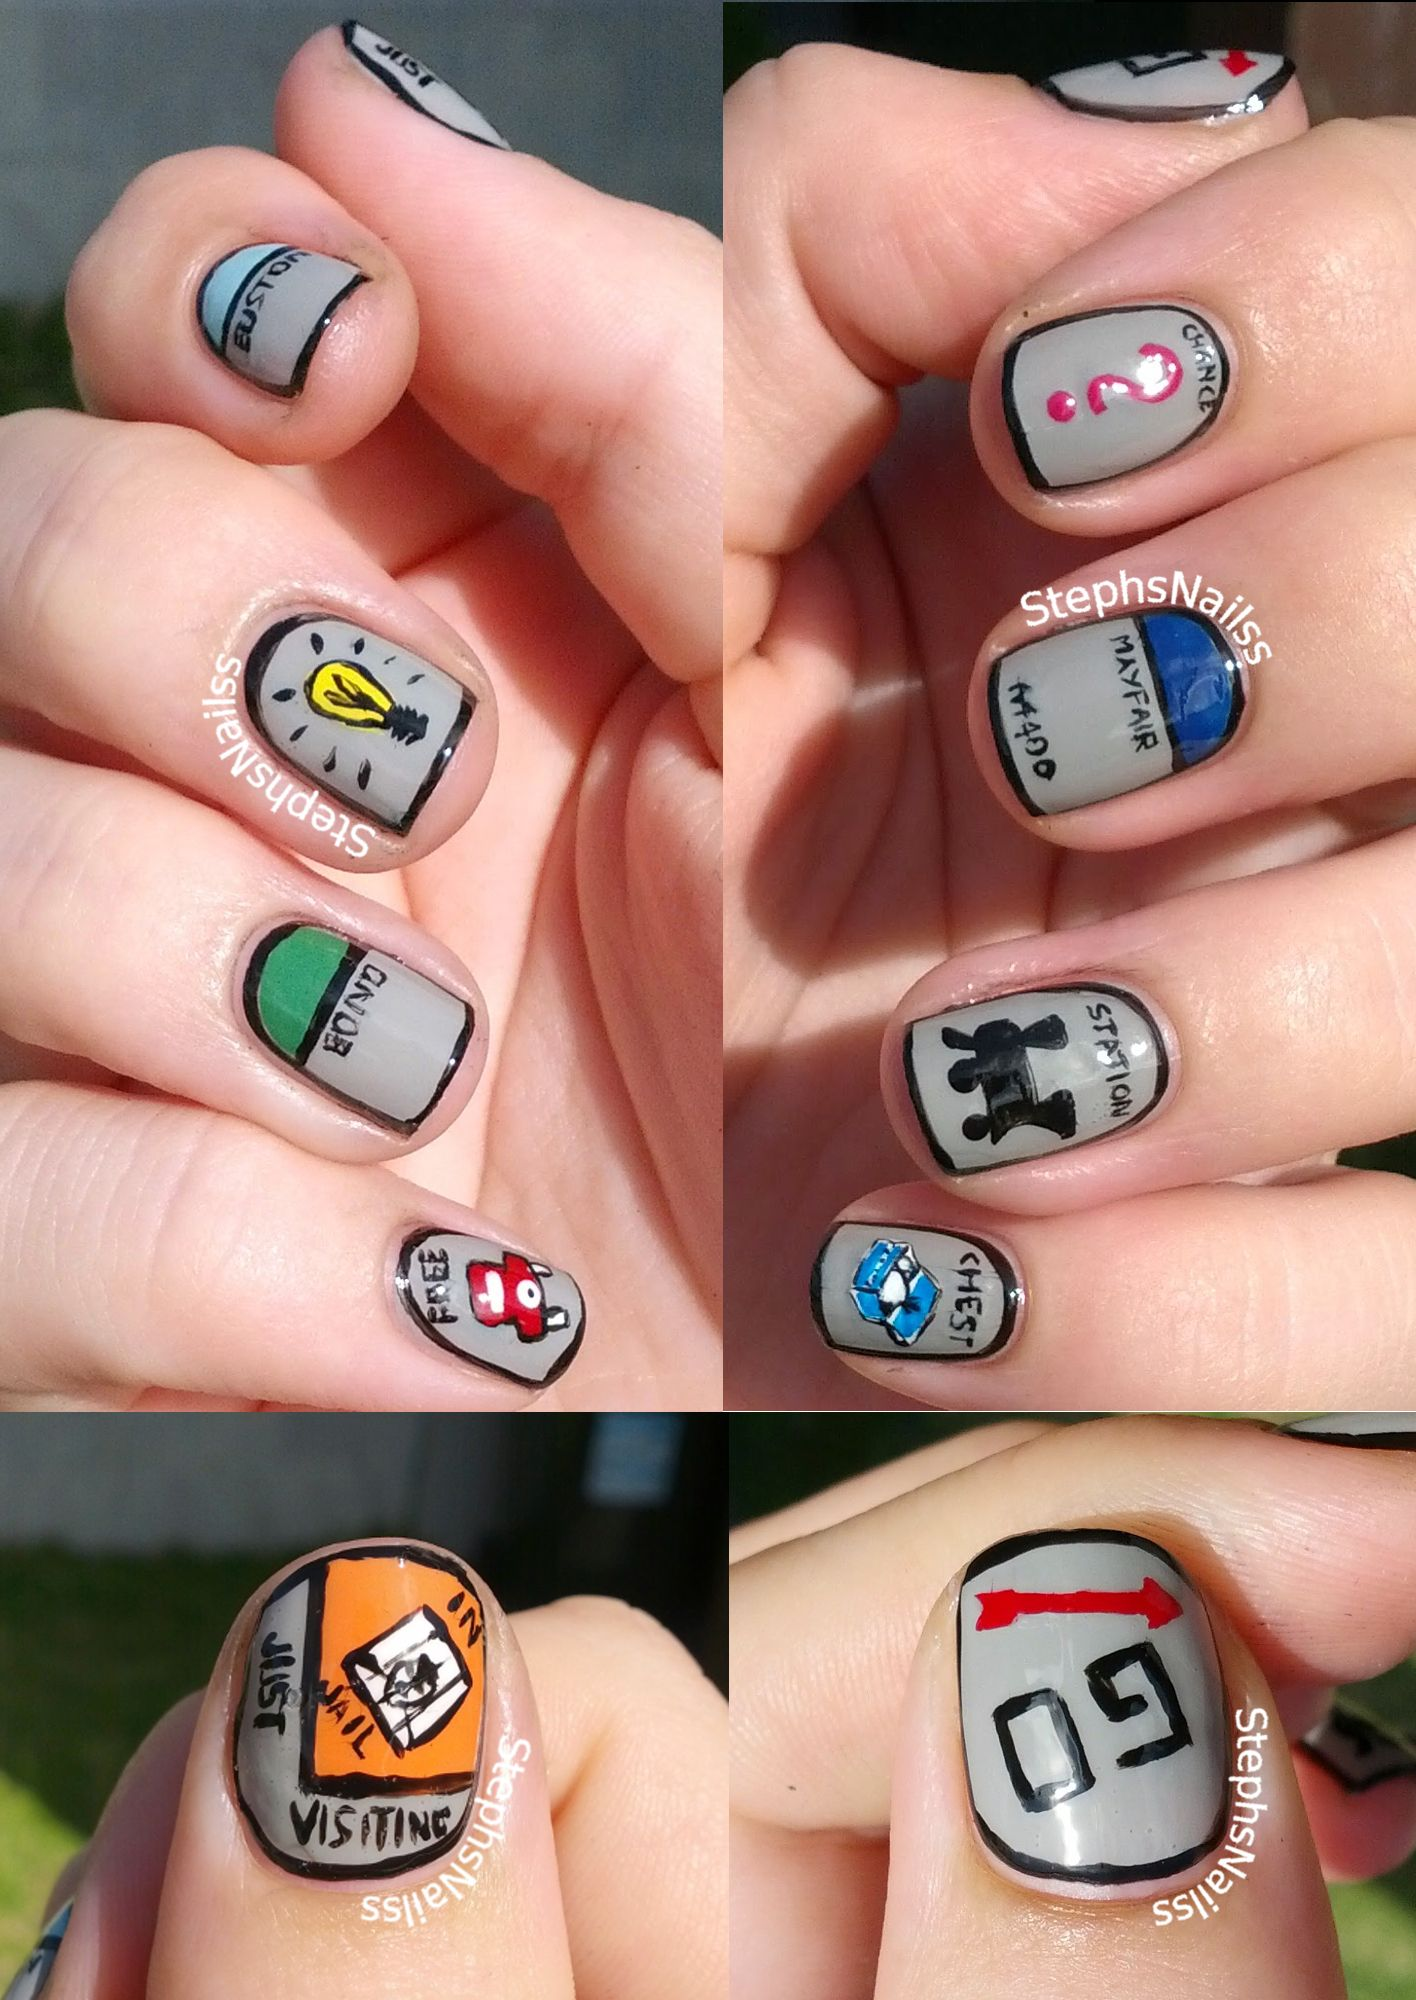 Stephsnailss Monopoly Nails Nail Art Toys Games Pinterest